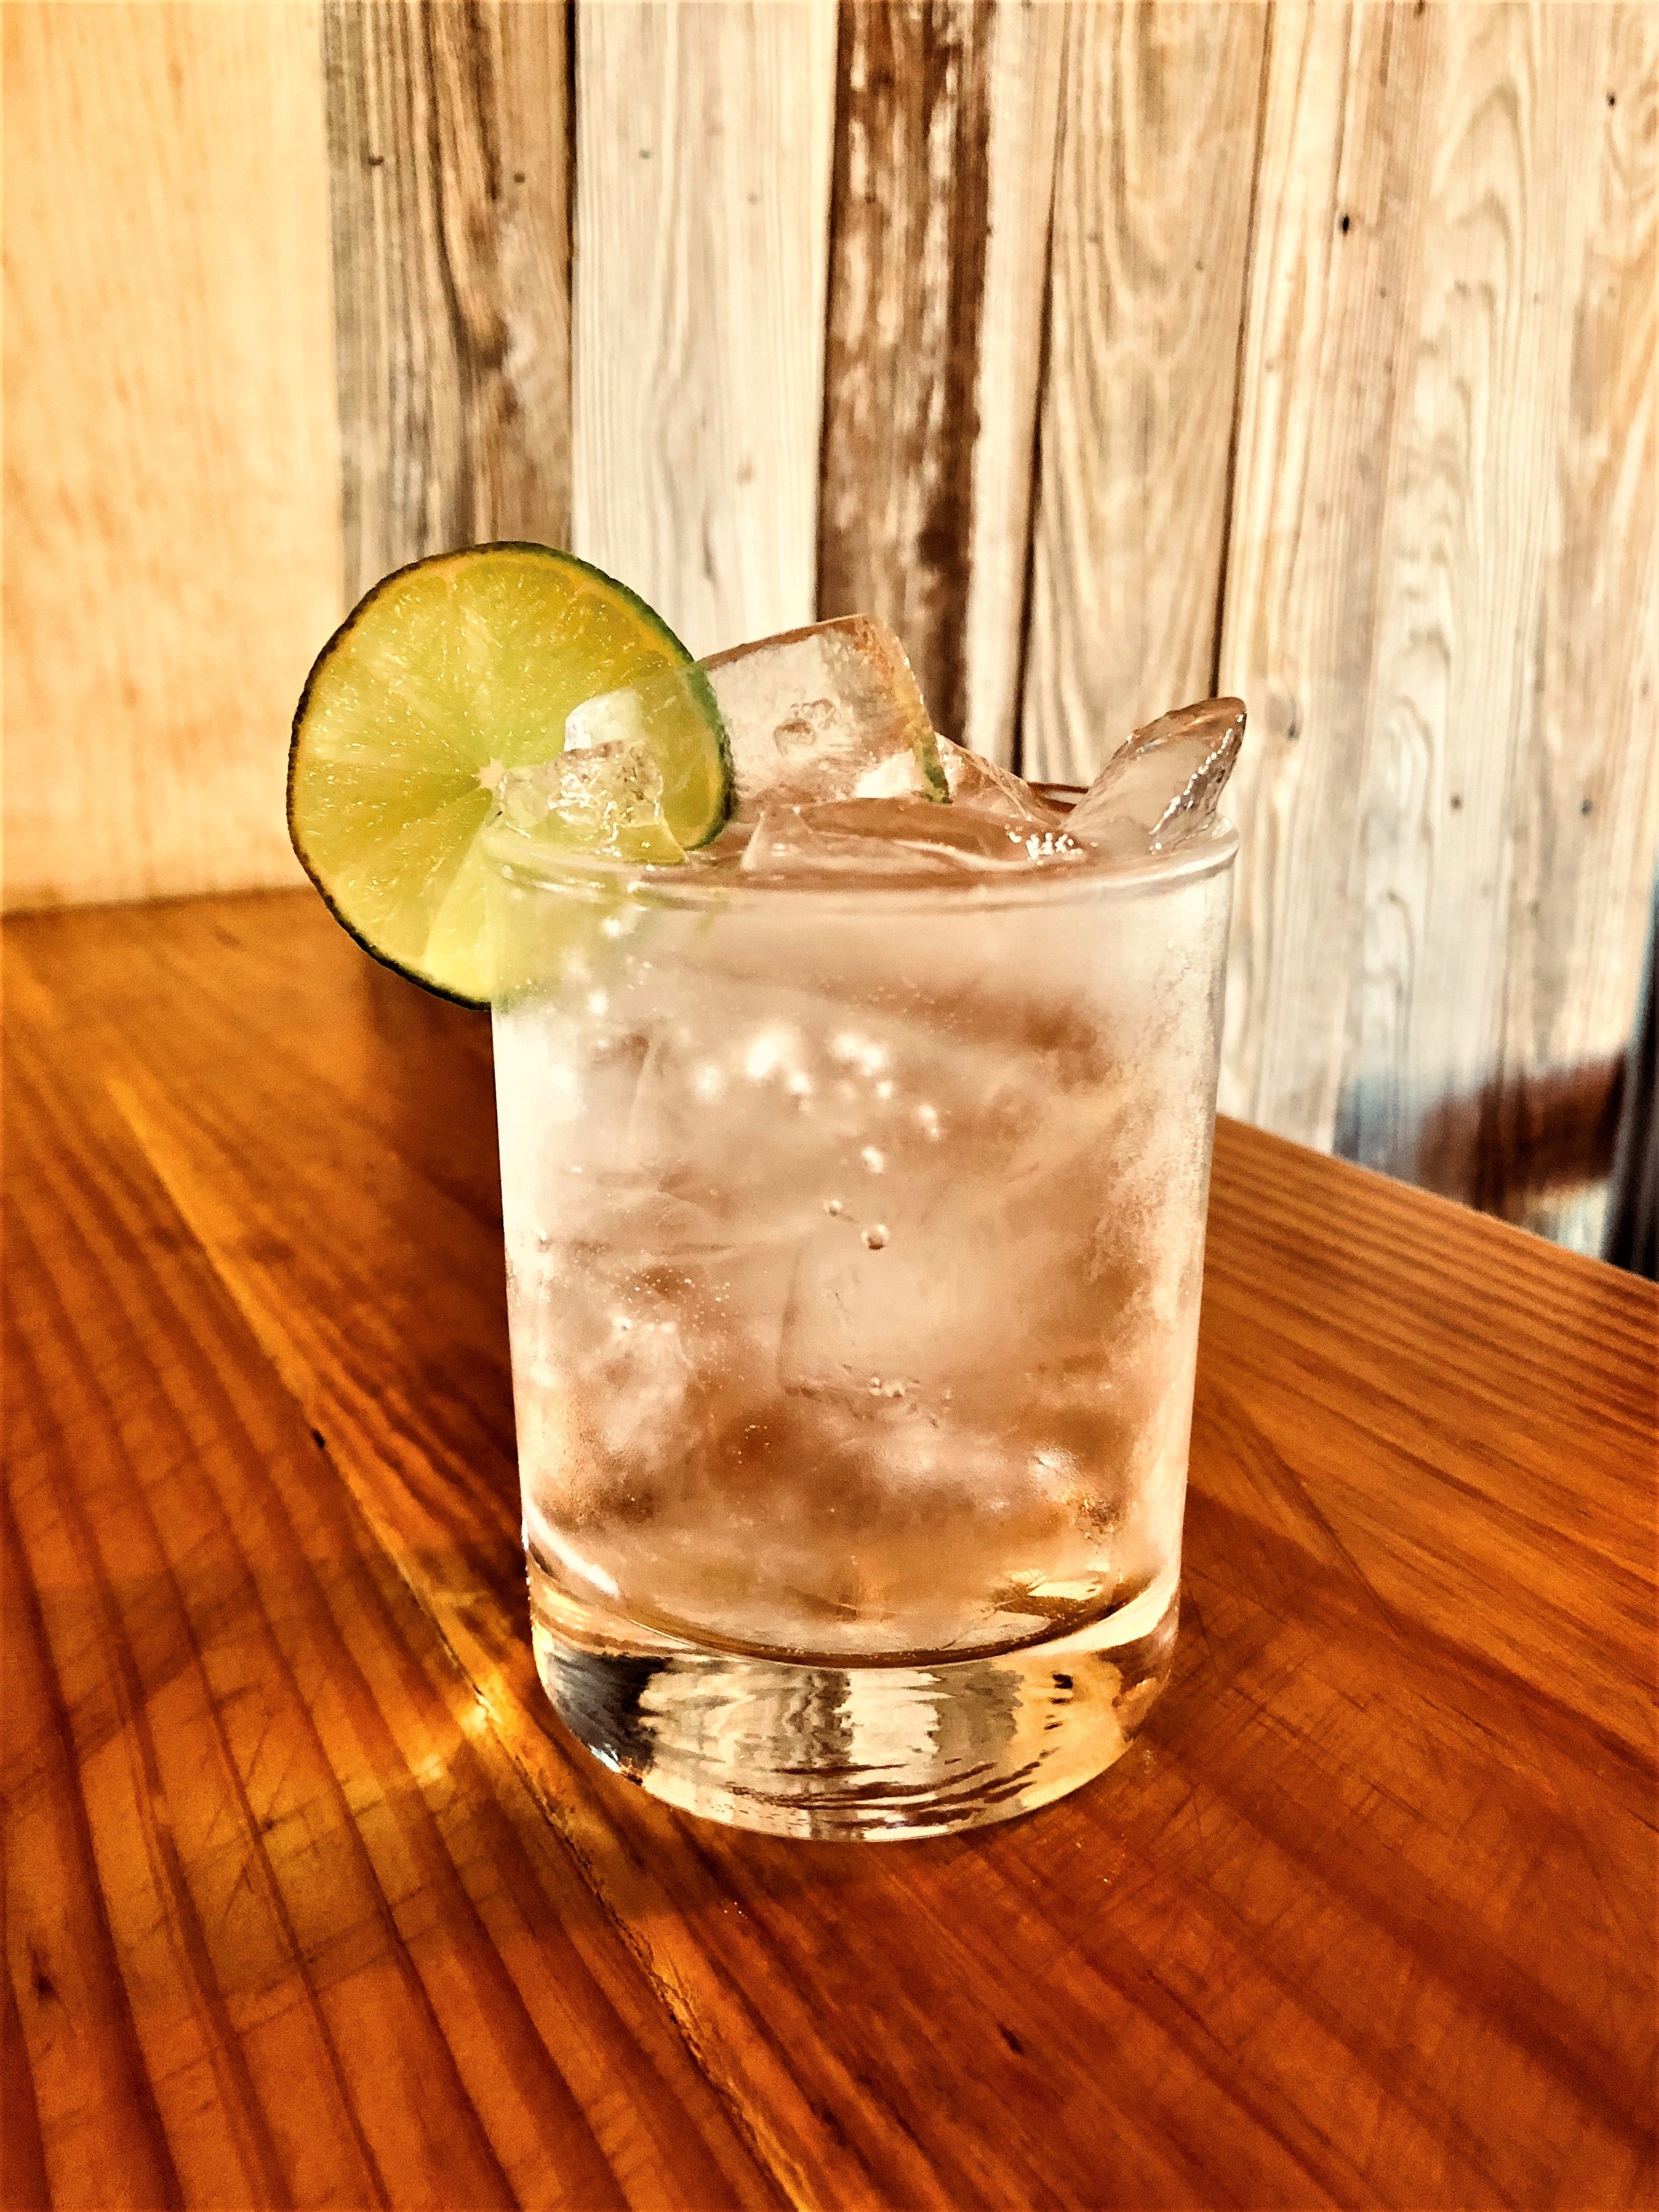 WRV TONIC   2 ounces of WILD RAG VODKA or WILD RAG MESQUITE BEAN VODKA 4 ounces Tonic Water  Fill glass with ice and add ingredients. Garnish with lime slice or wedge.